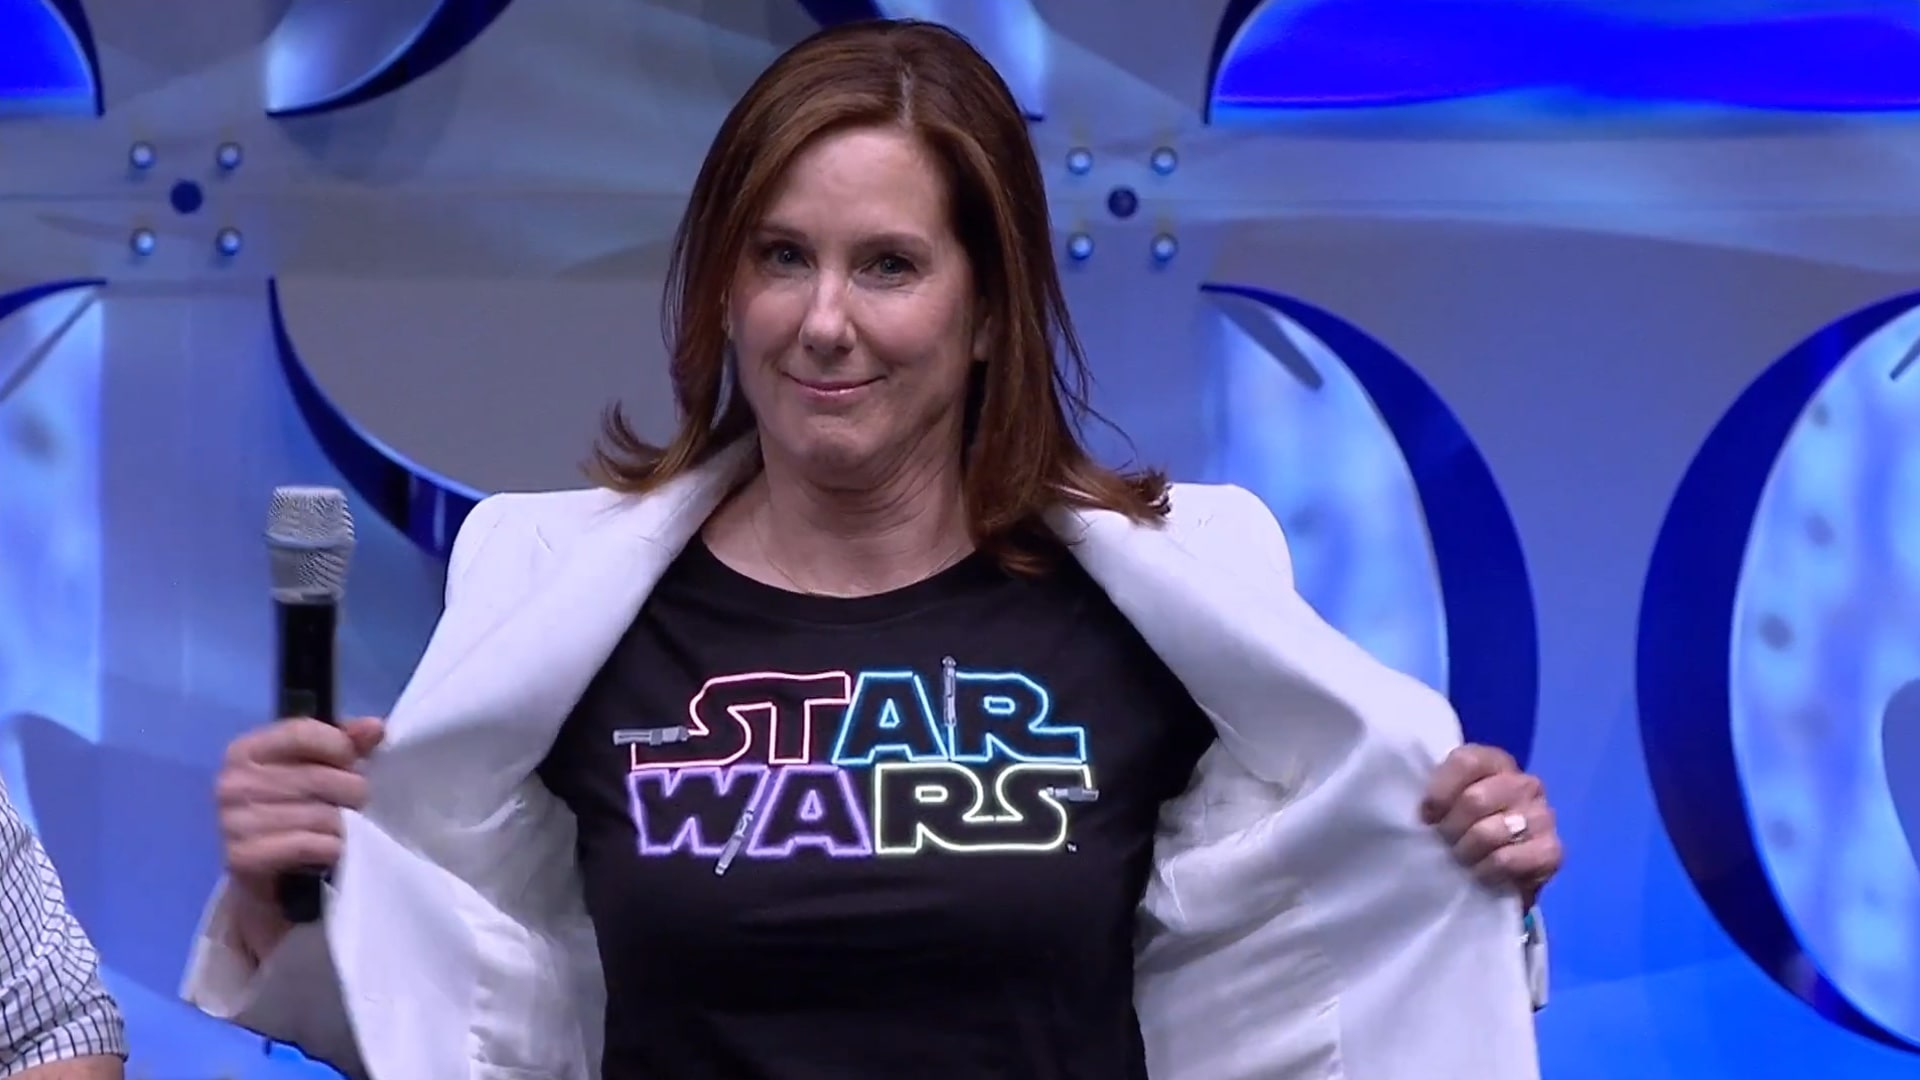 Lucasfilm's President Kathleen Kennedy receives 3-Year contract extension through 2021